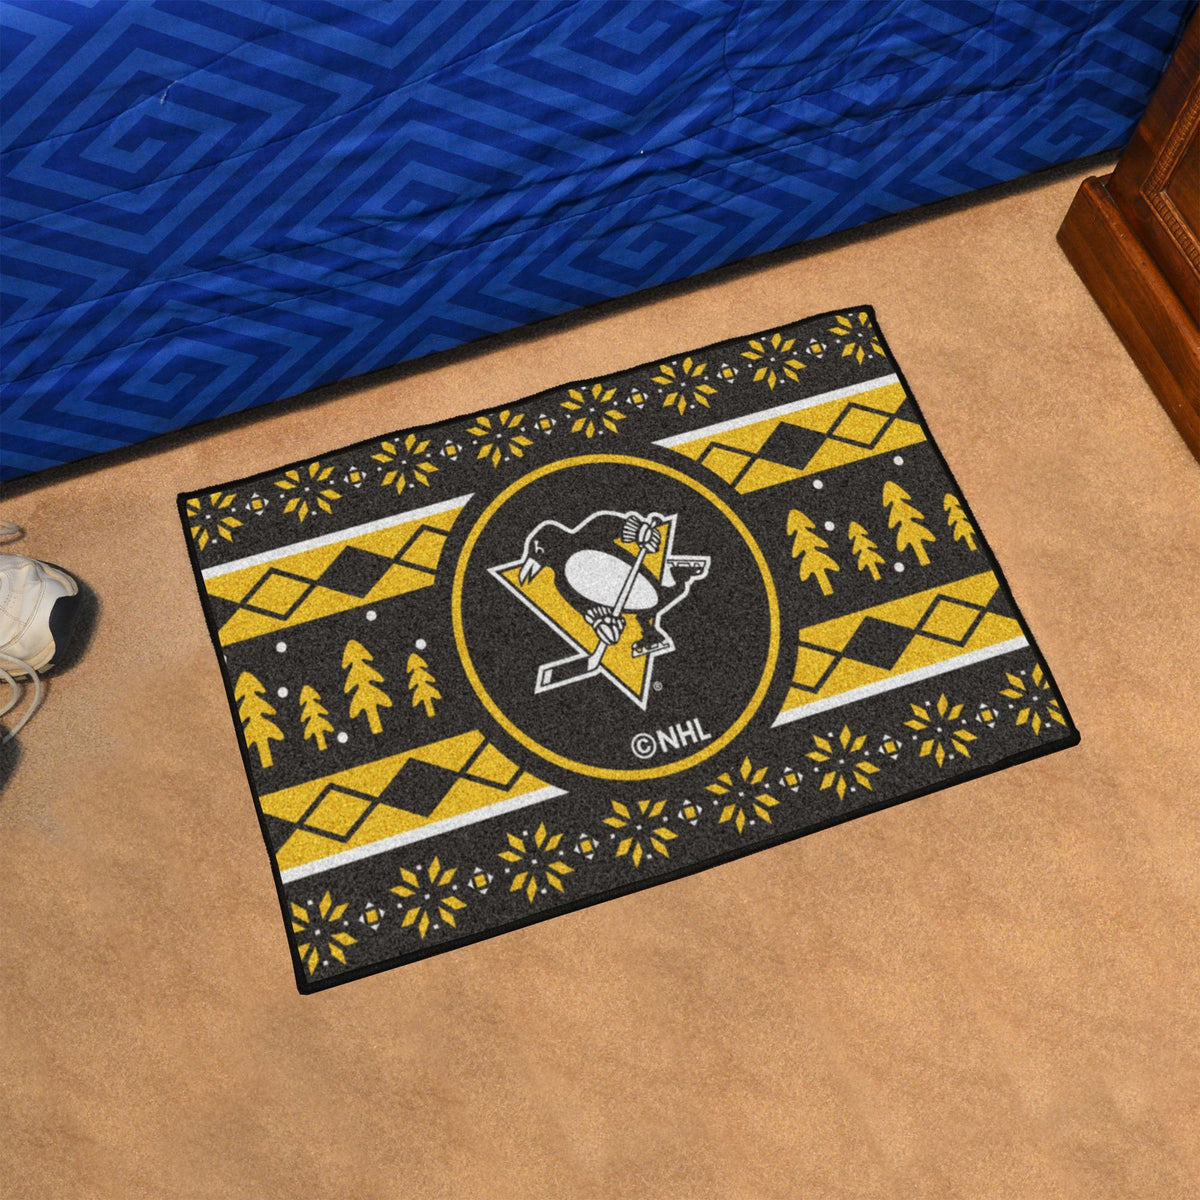 NHL - Holiday Sweater Starter Mat NHL Mats, Rectangular Mats, Holiday Sweater Starter Mat, NHL, Home Fan Mats Pittsburgh Penguins